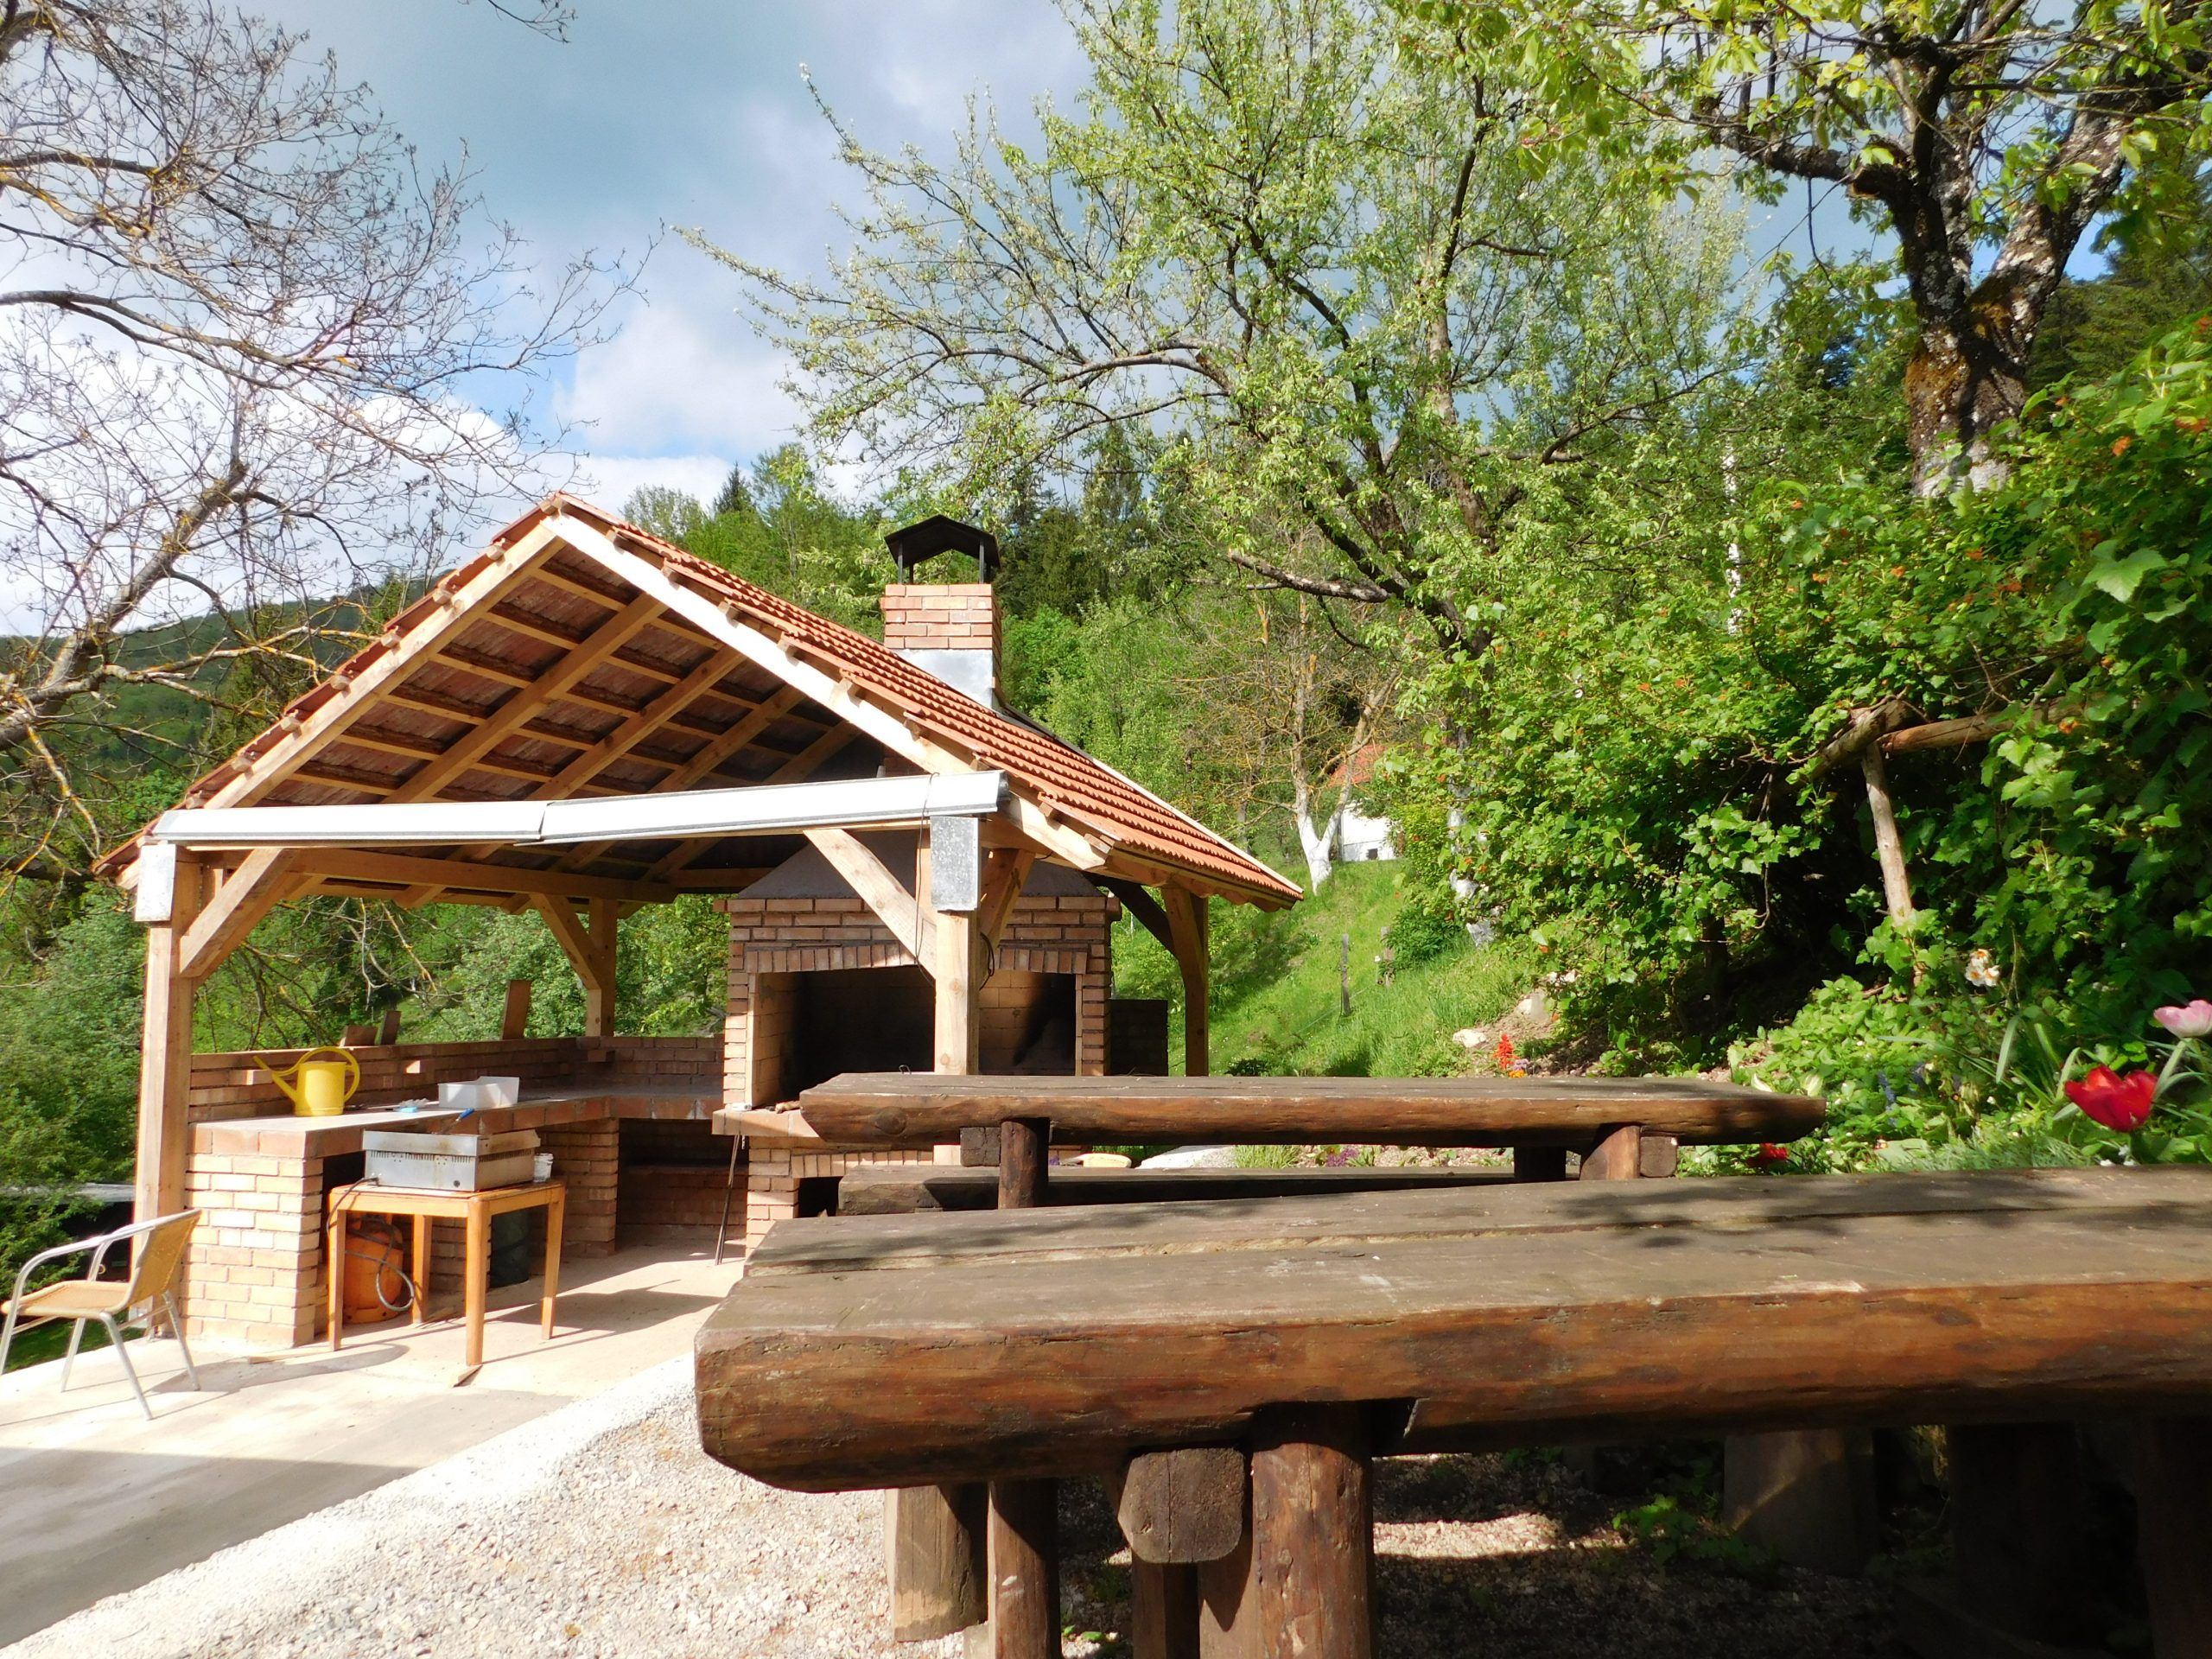 Explore Gorski Kotar the Authentic Way at Mountain House Skrad